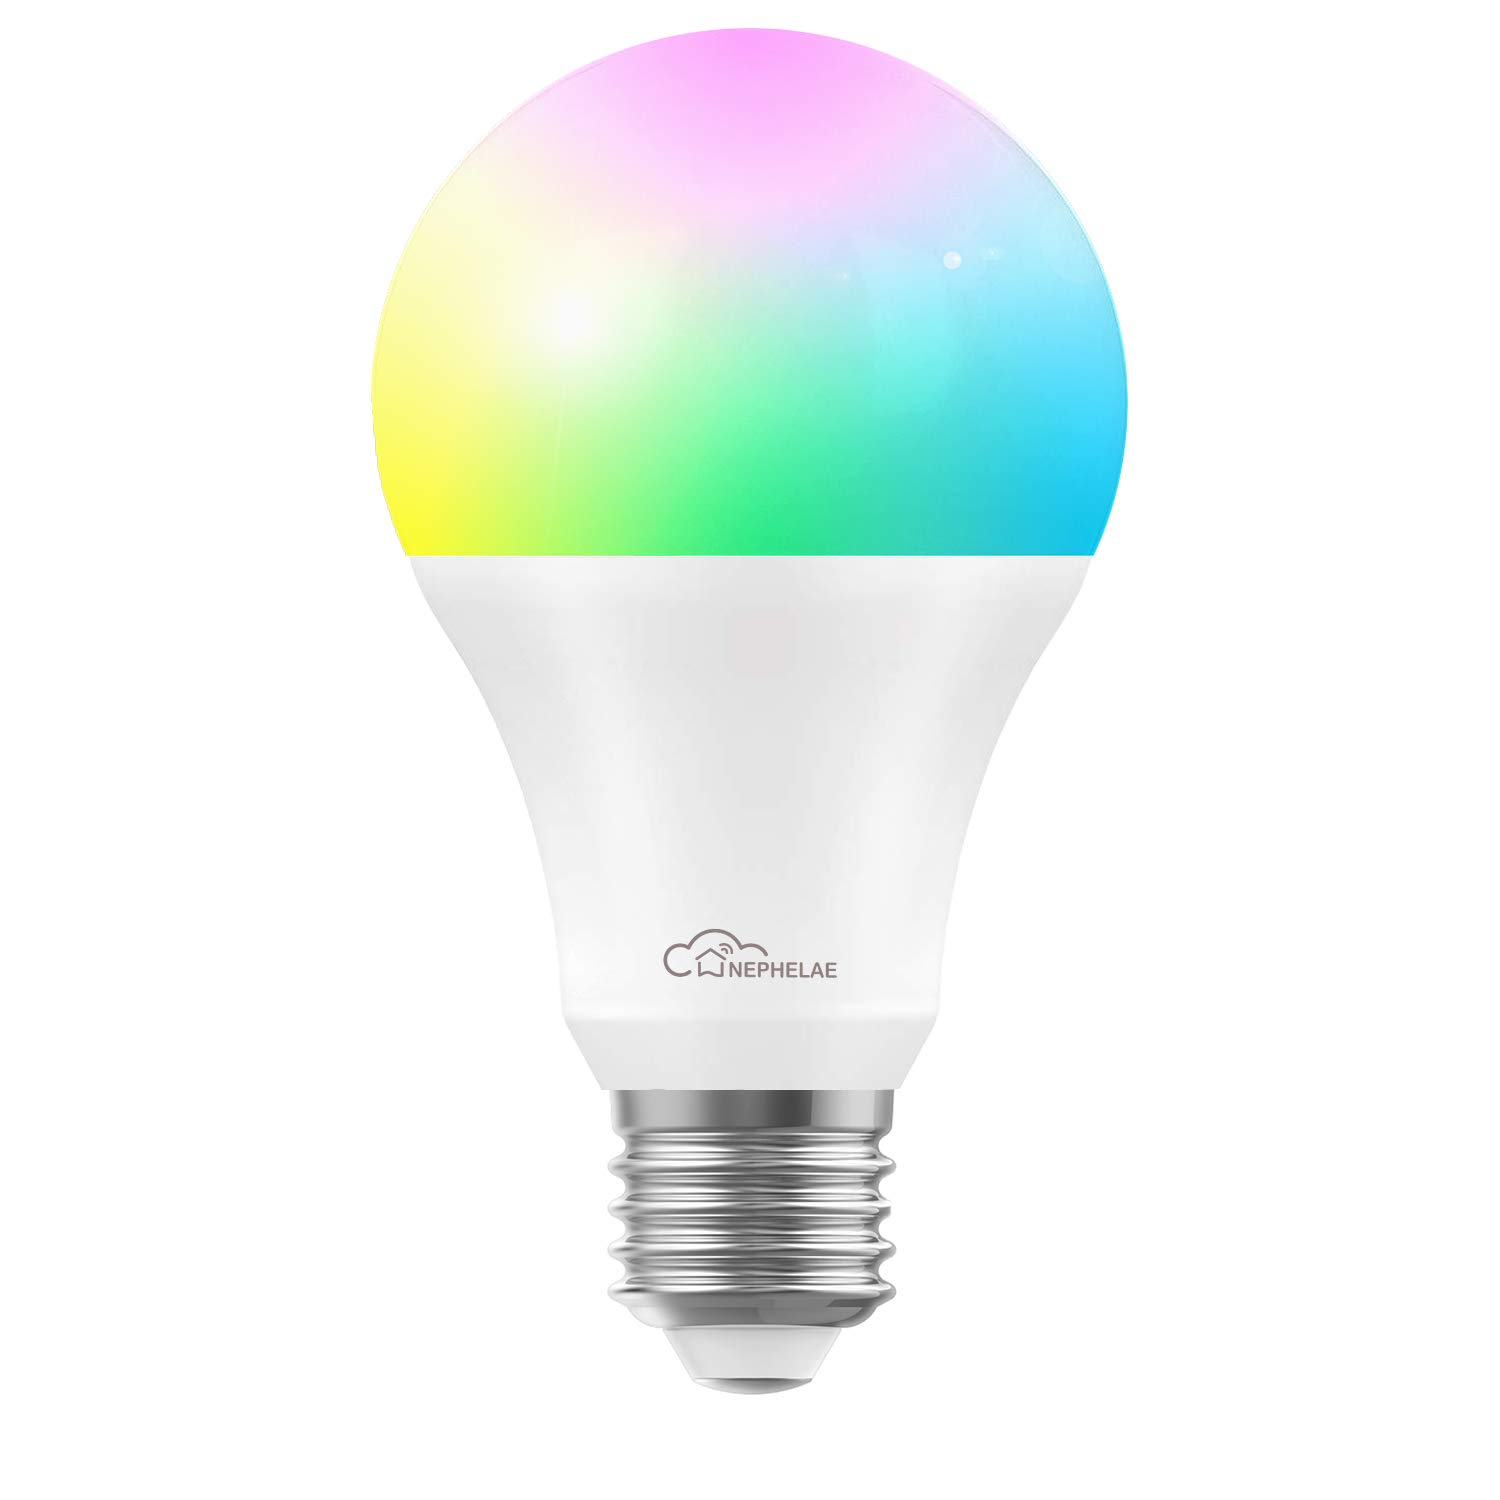 Nephelae Smart Wi-Fi LED Light Bulb - Multicolor, A19 600lm, Dimmable, Soft White, No Hub Required - Compatible with Alexa, Google Assistant and IFTTT